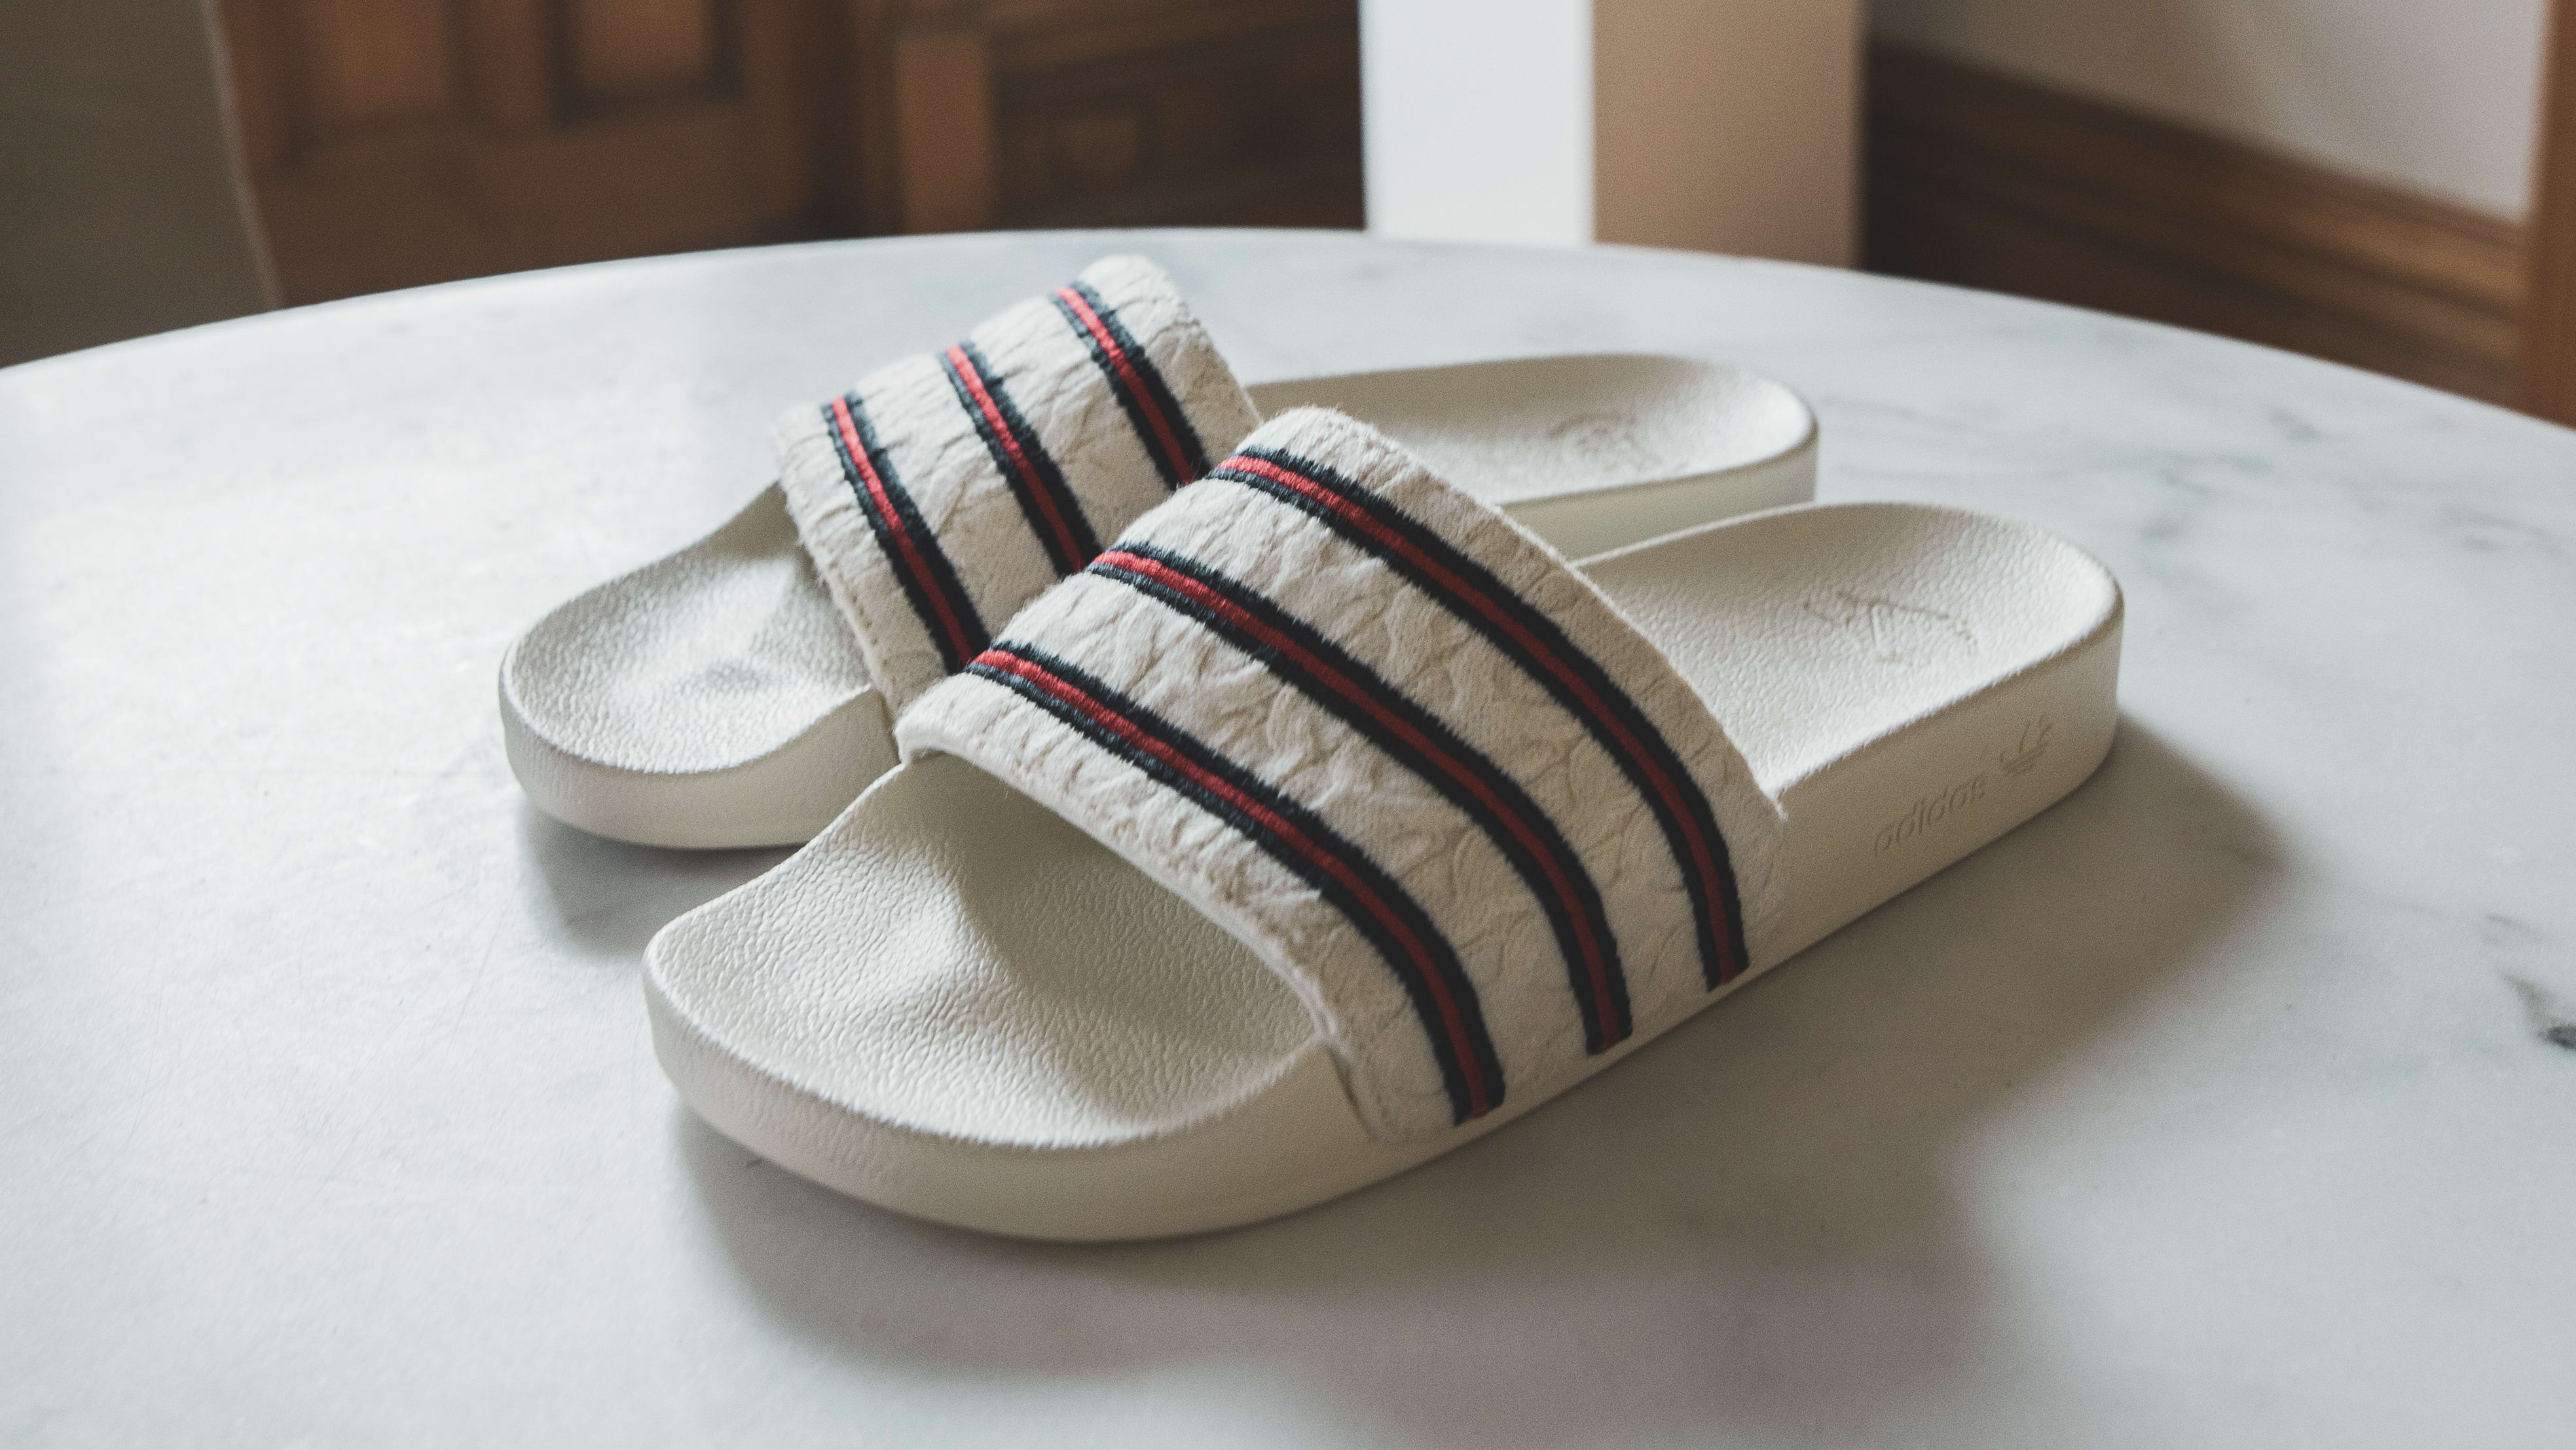 Extra Butter x Adidas Adilette Slide 'Cable Knit'